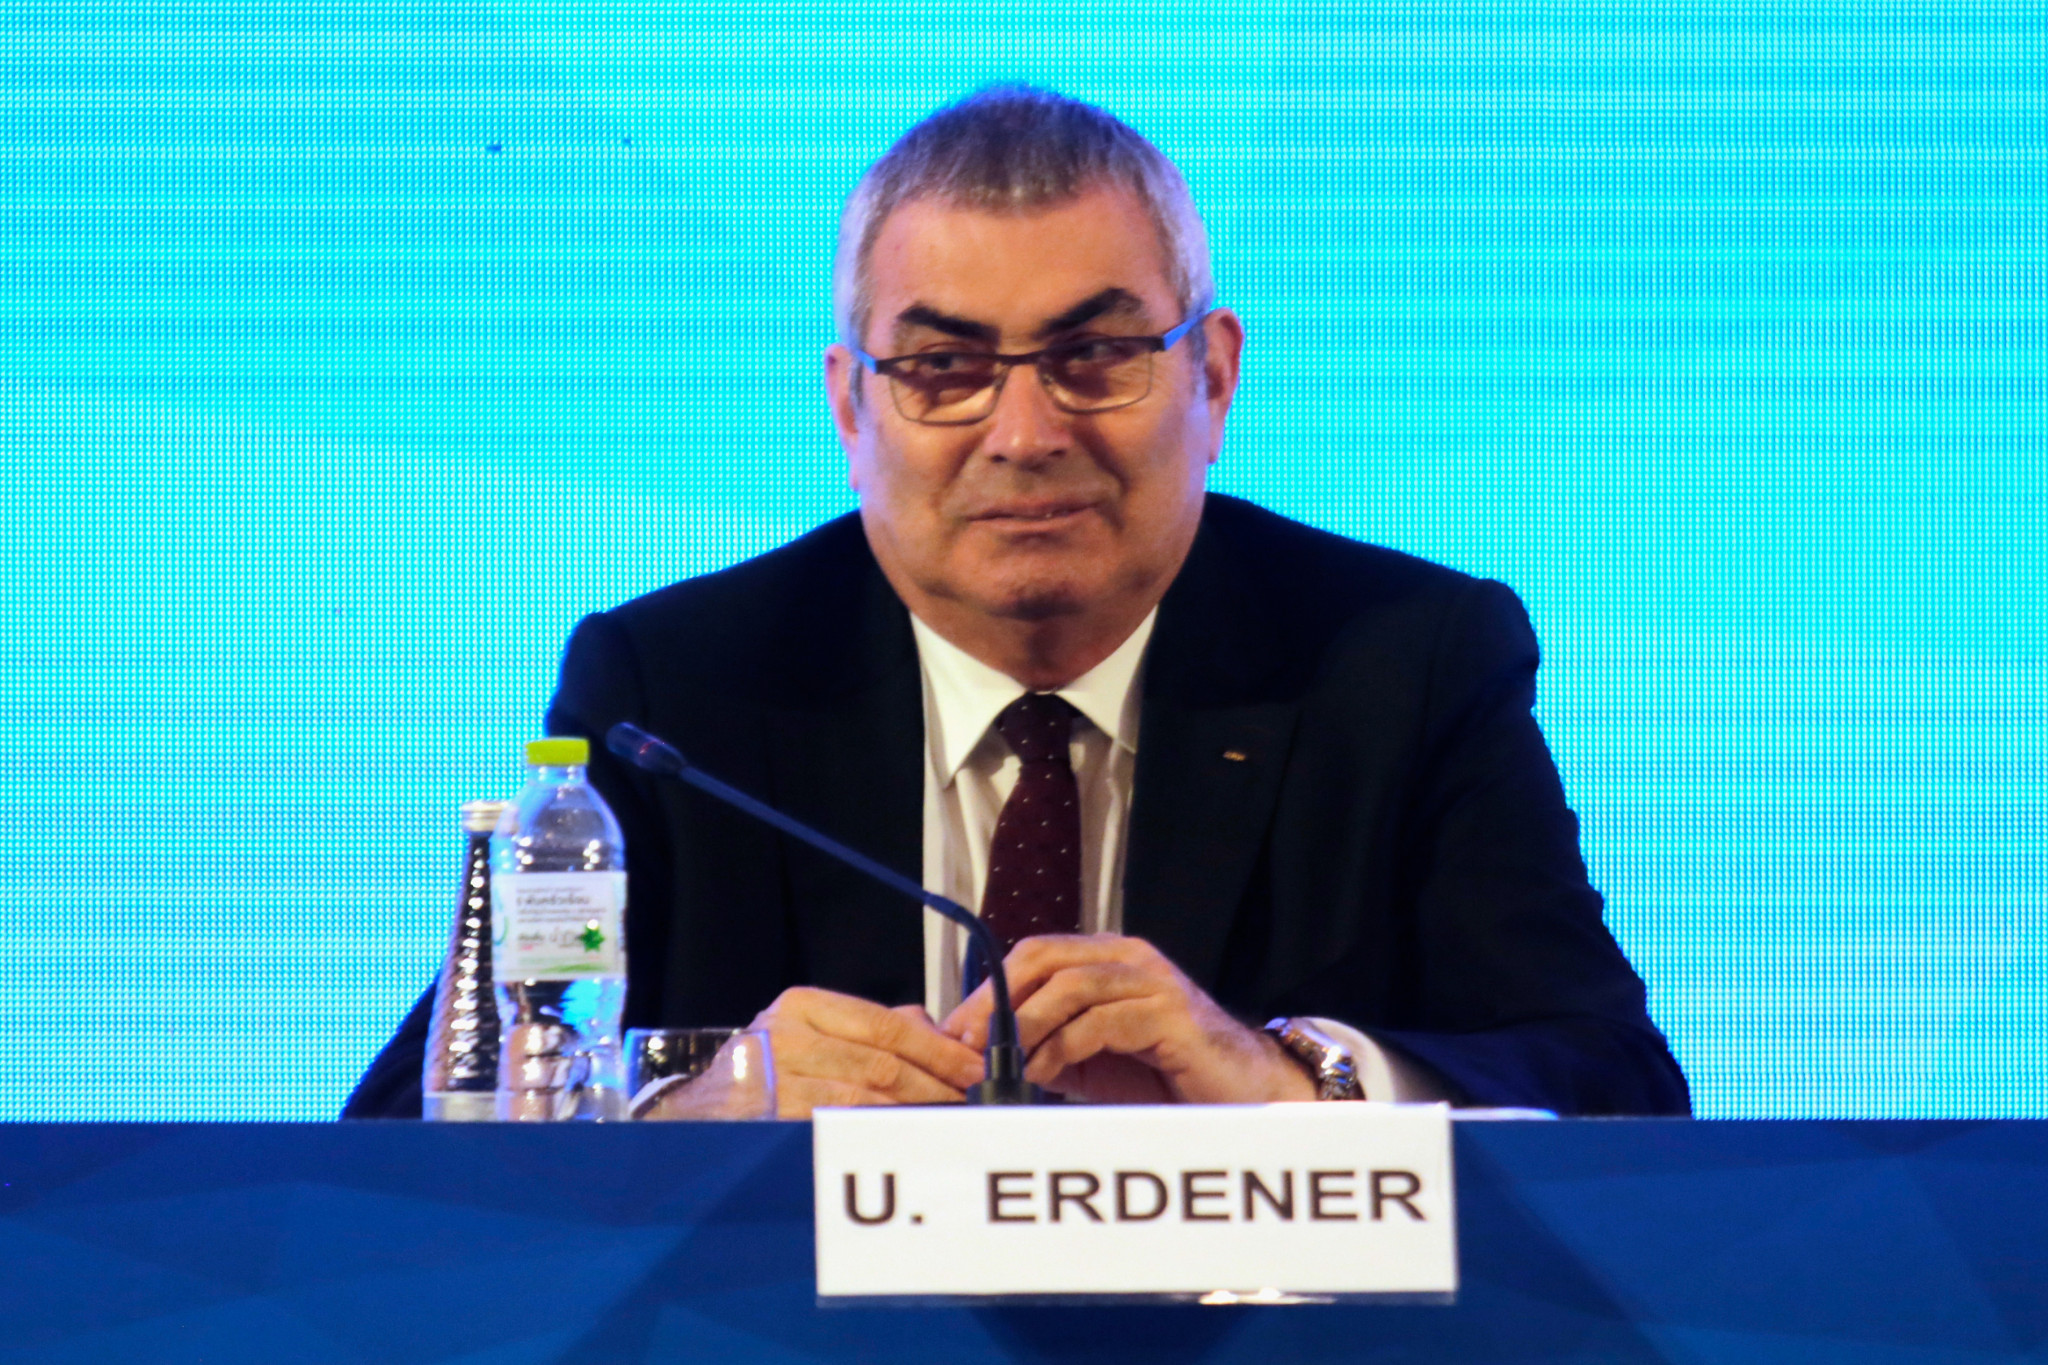 Erdener announced as chair as IOC reveals make-up of 2022 Youth Olympic Games Evaluation Commission